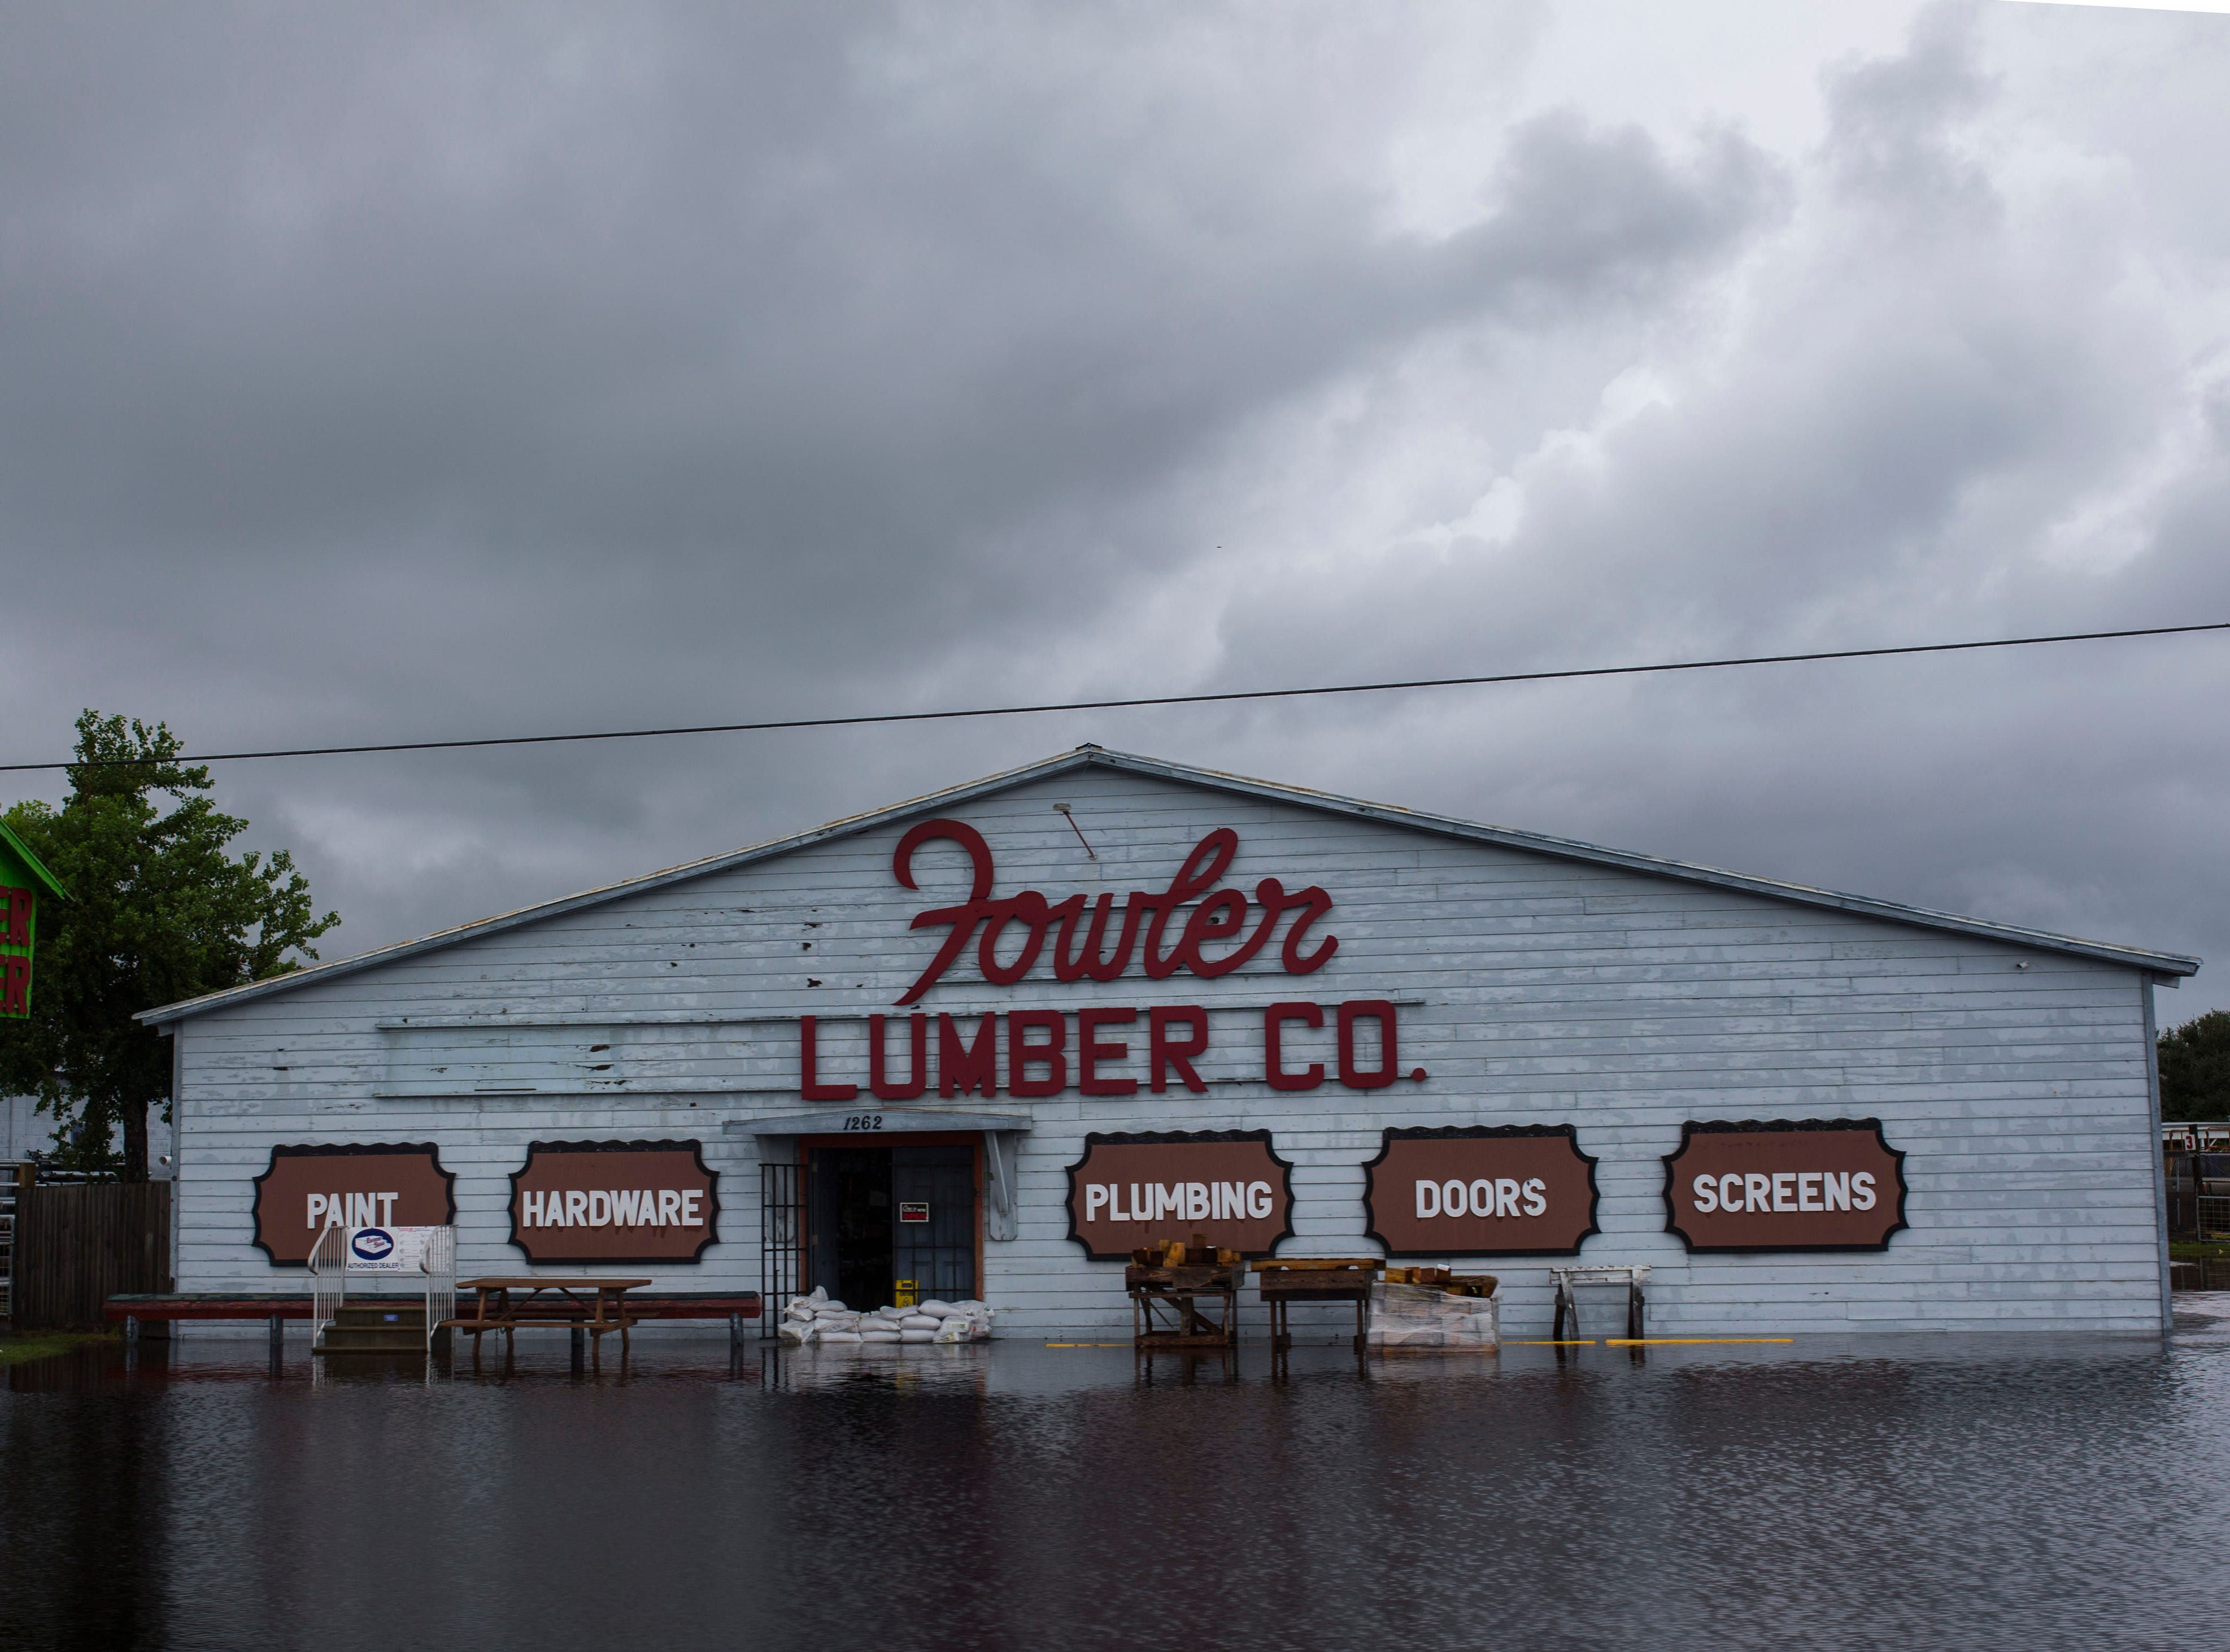 Fowler Lumber Company on Highway 35 between Rockport and Aransas Pass on Saturday, Sept. 15, 2018.